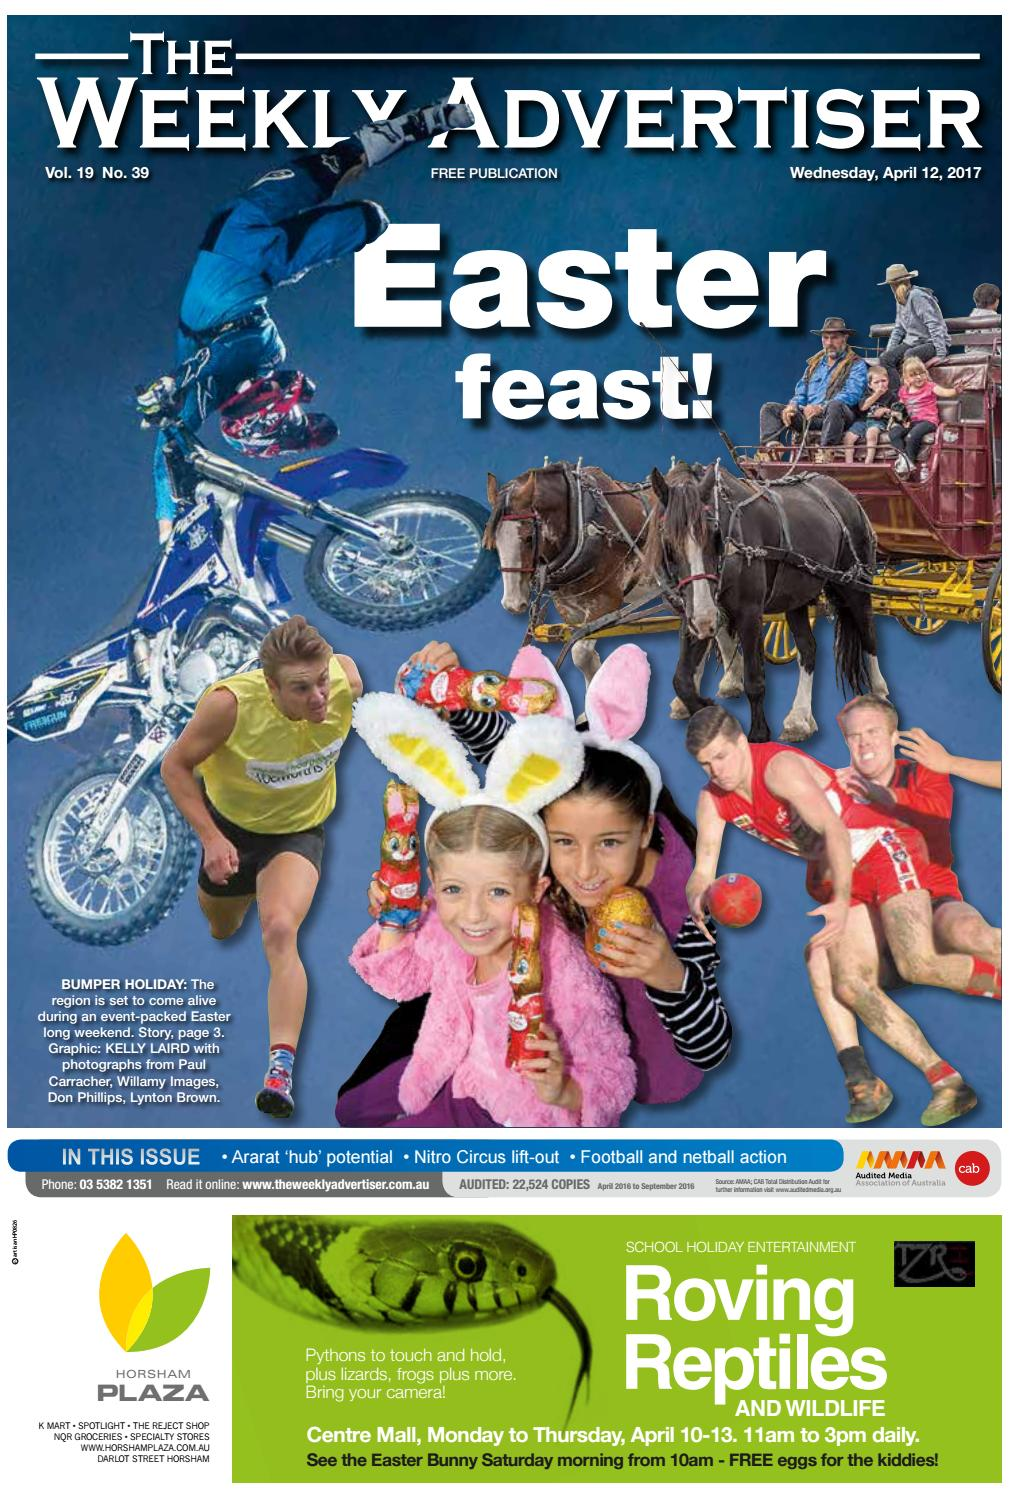 The Weekly Advertiser - Wednesday, April 12, 2017 by The Weekly Advertiser  - issuu